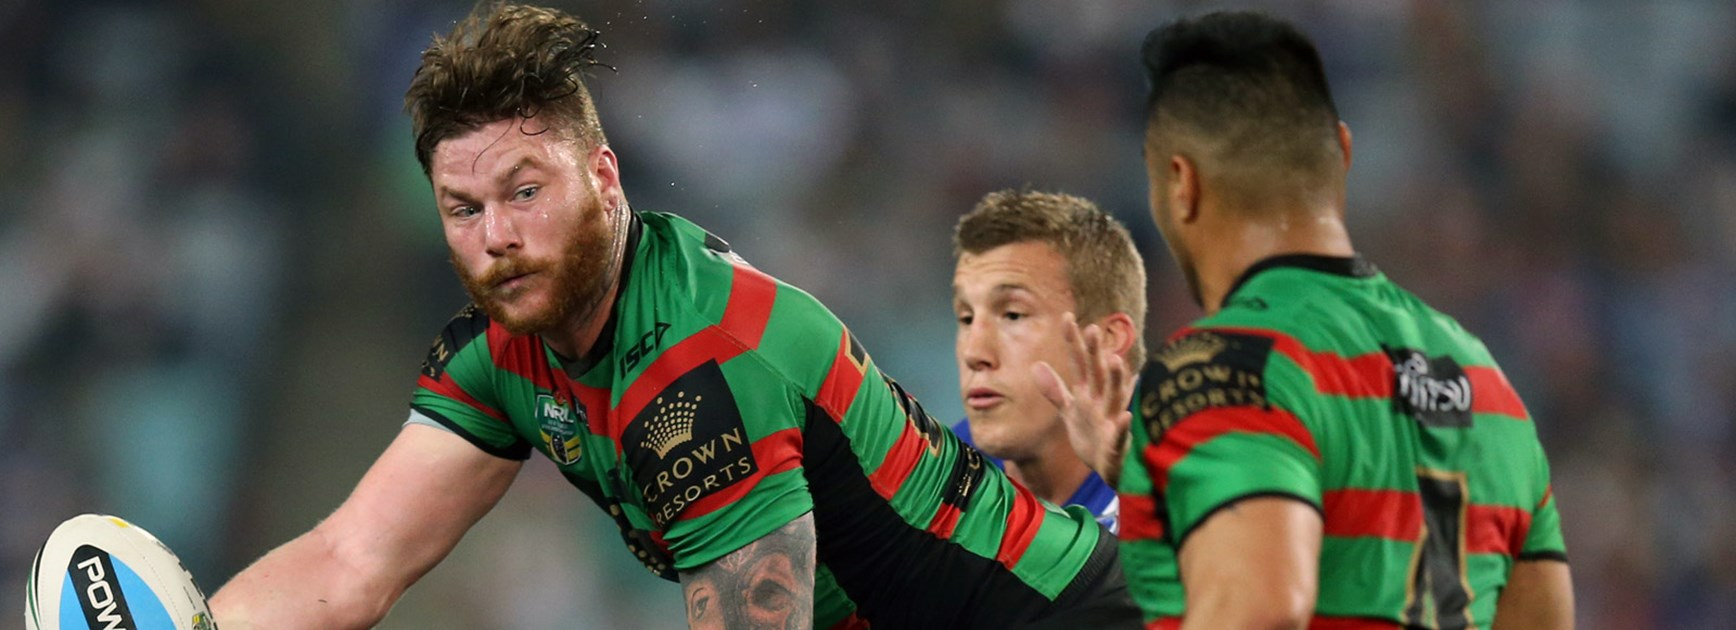 Souths forward Chris McQueen is fired up after missing the side's big loss to the Broncos.